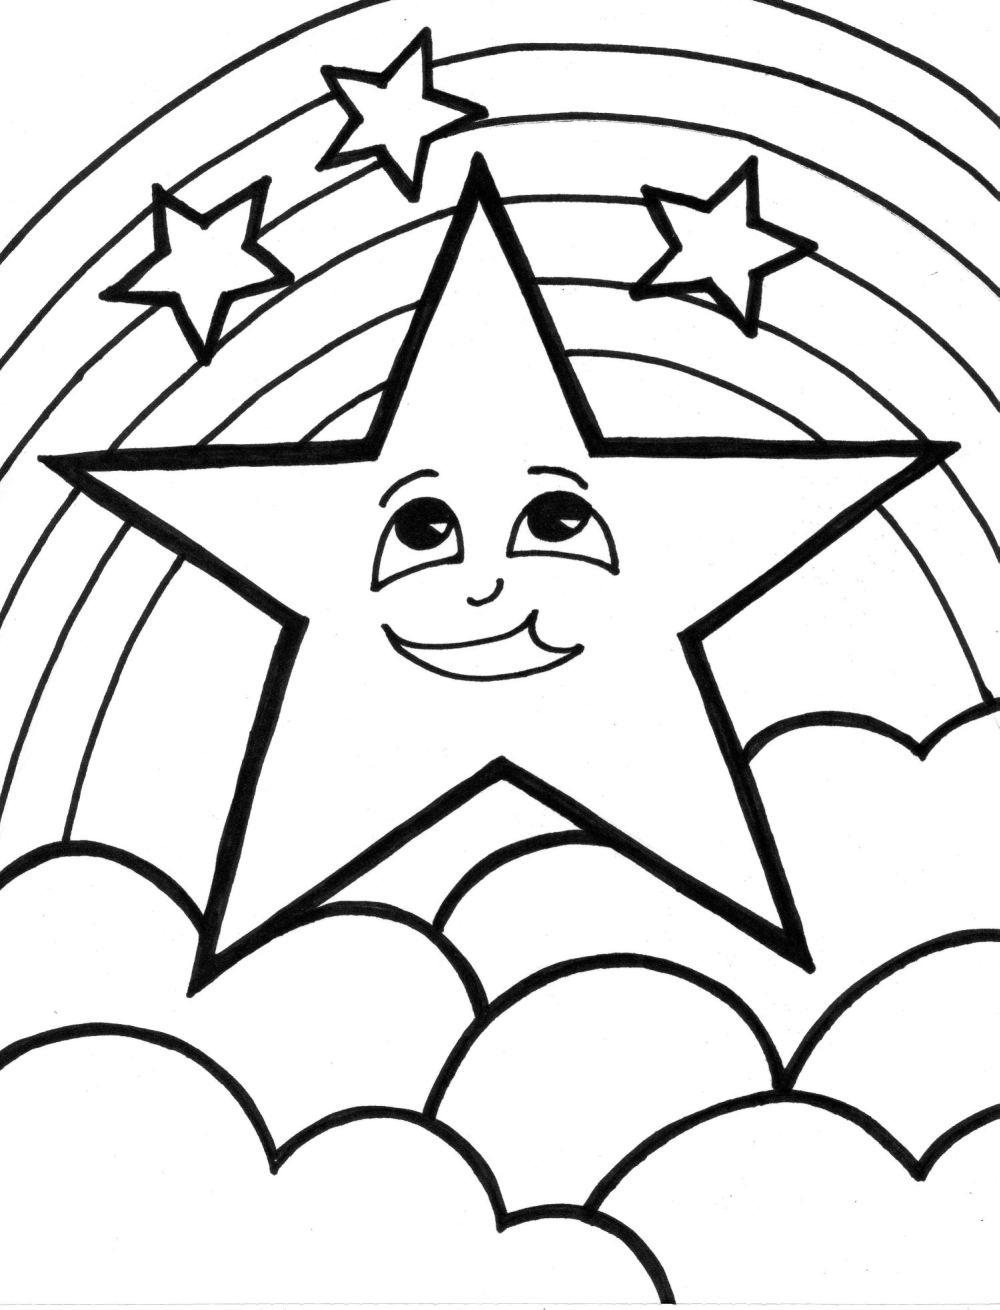 coloring for 4 year olds 4 year old coloring pages free printable 4 year old coloring 4 for year olds